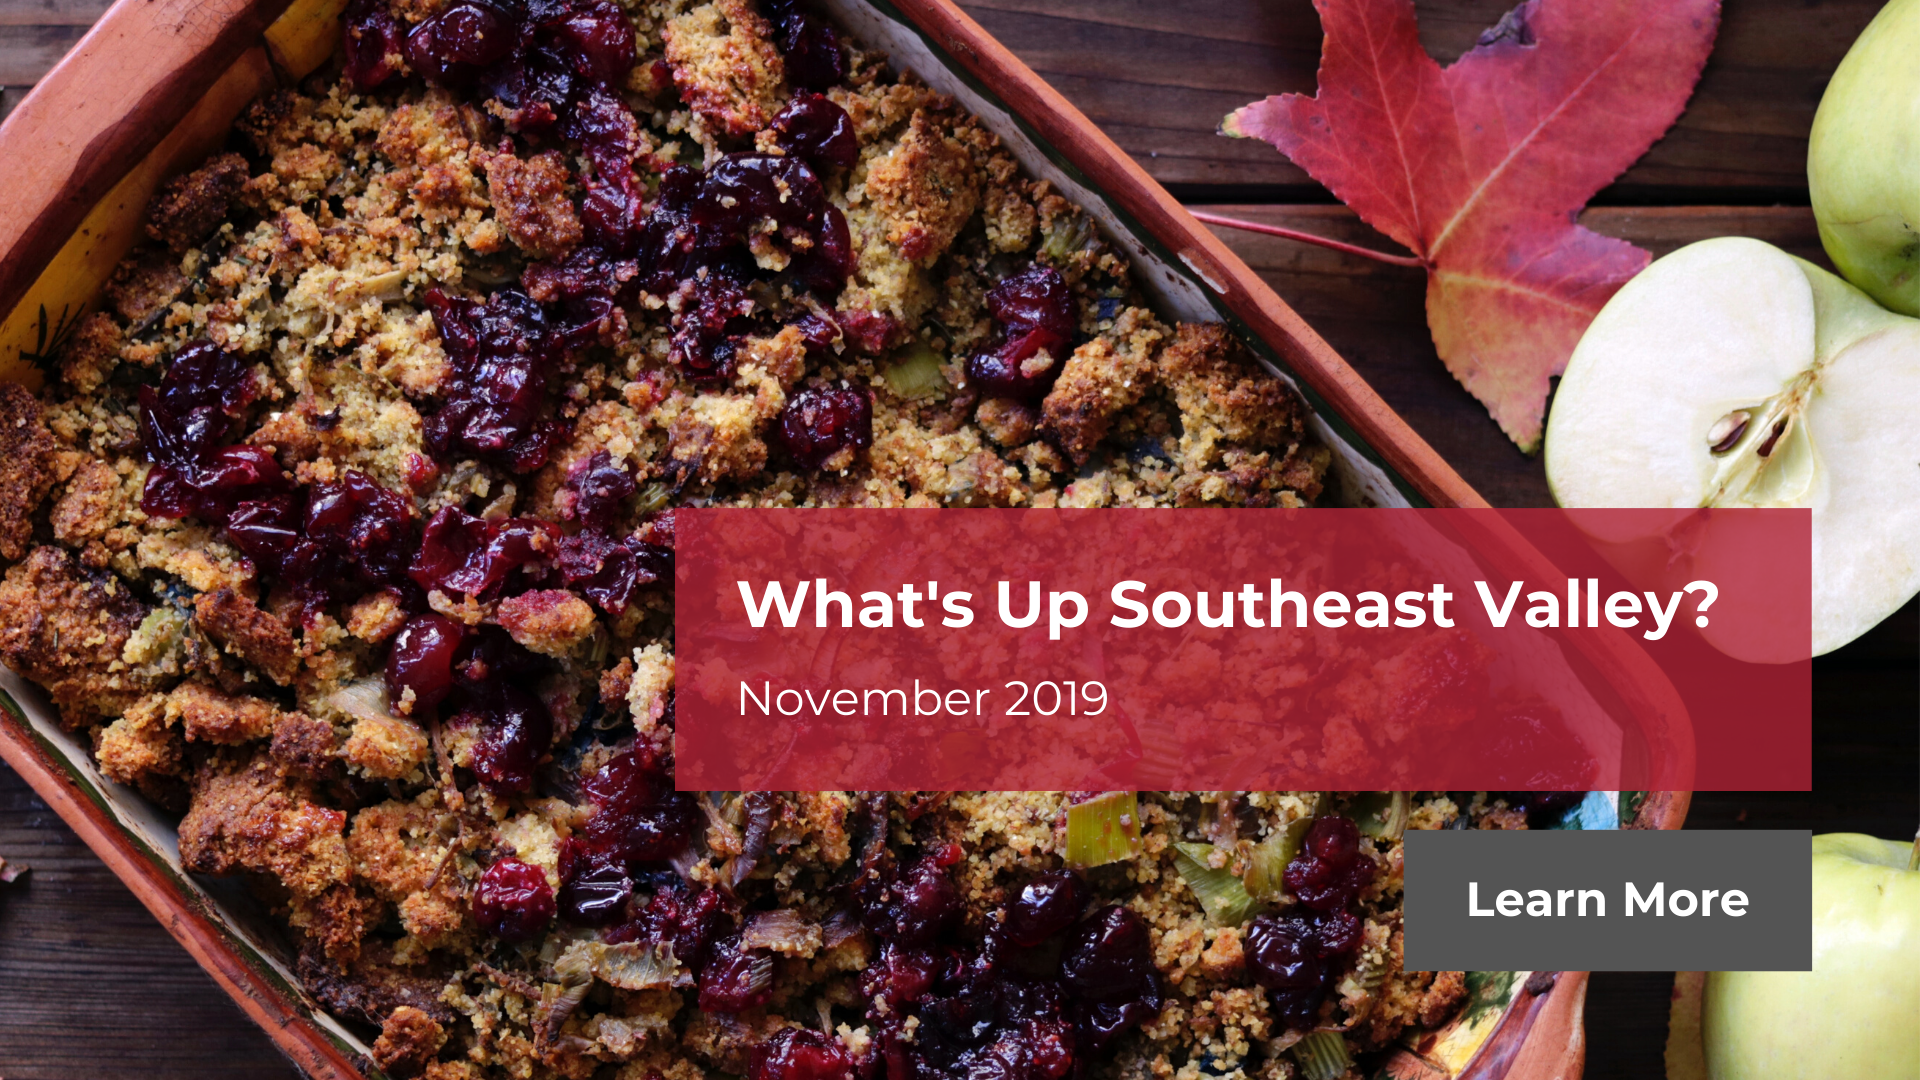 What's Up Southeast Valley? November 2019